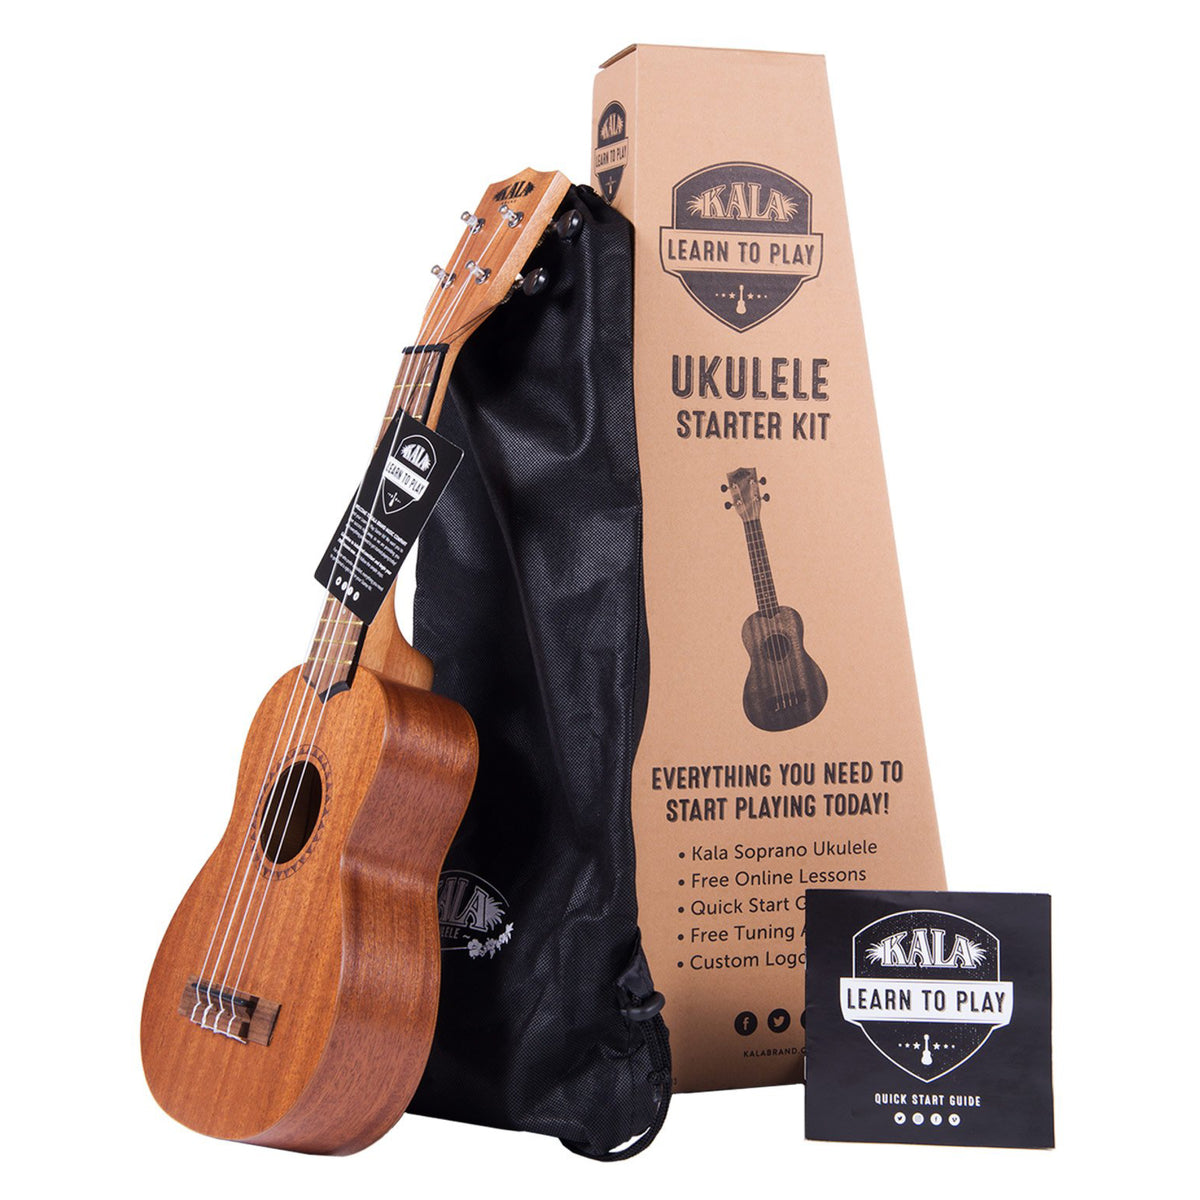 Kala Learn to Play Ukulele Starter Kit - KALA-LTP-S